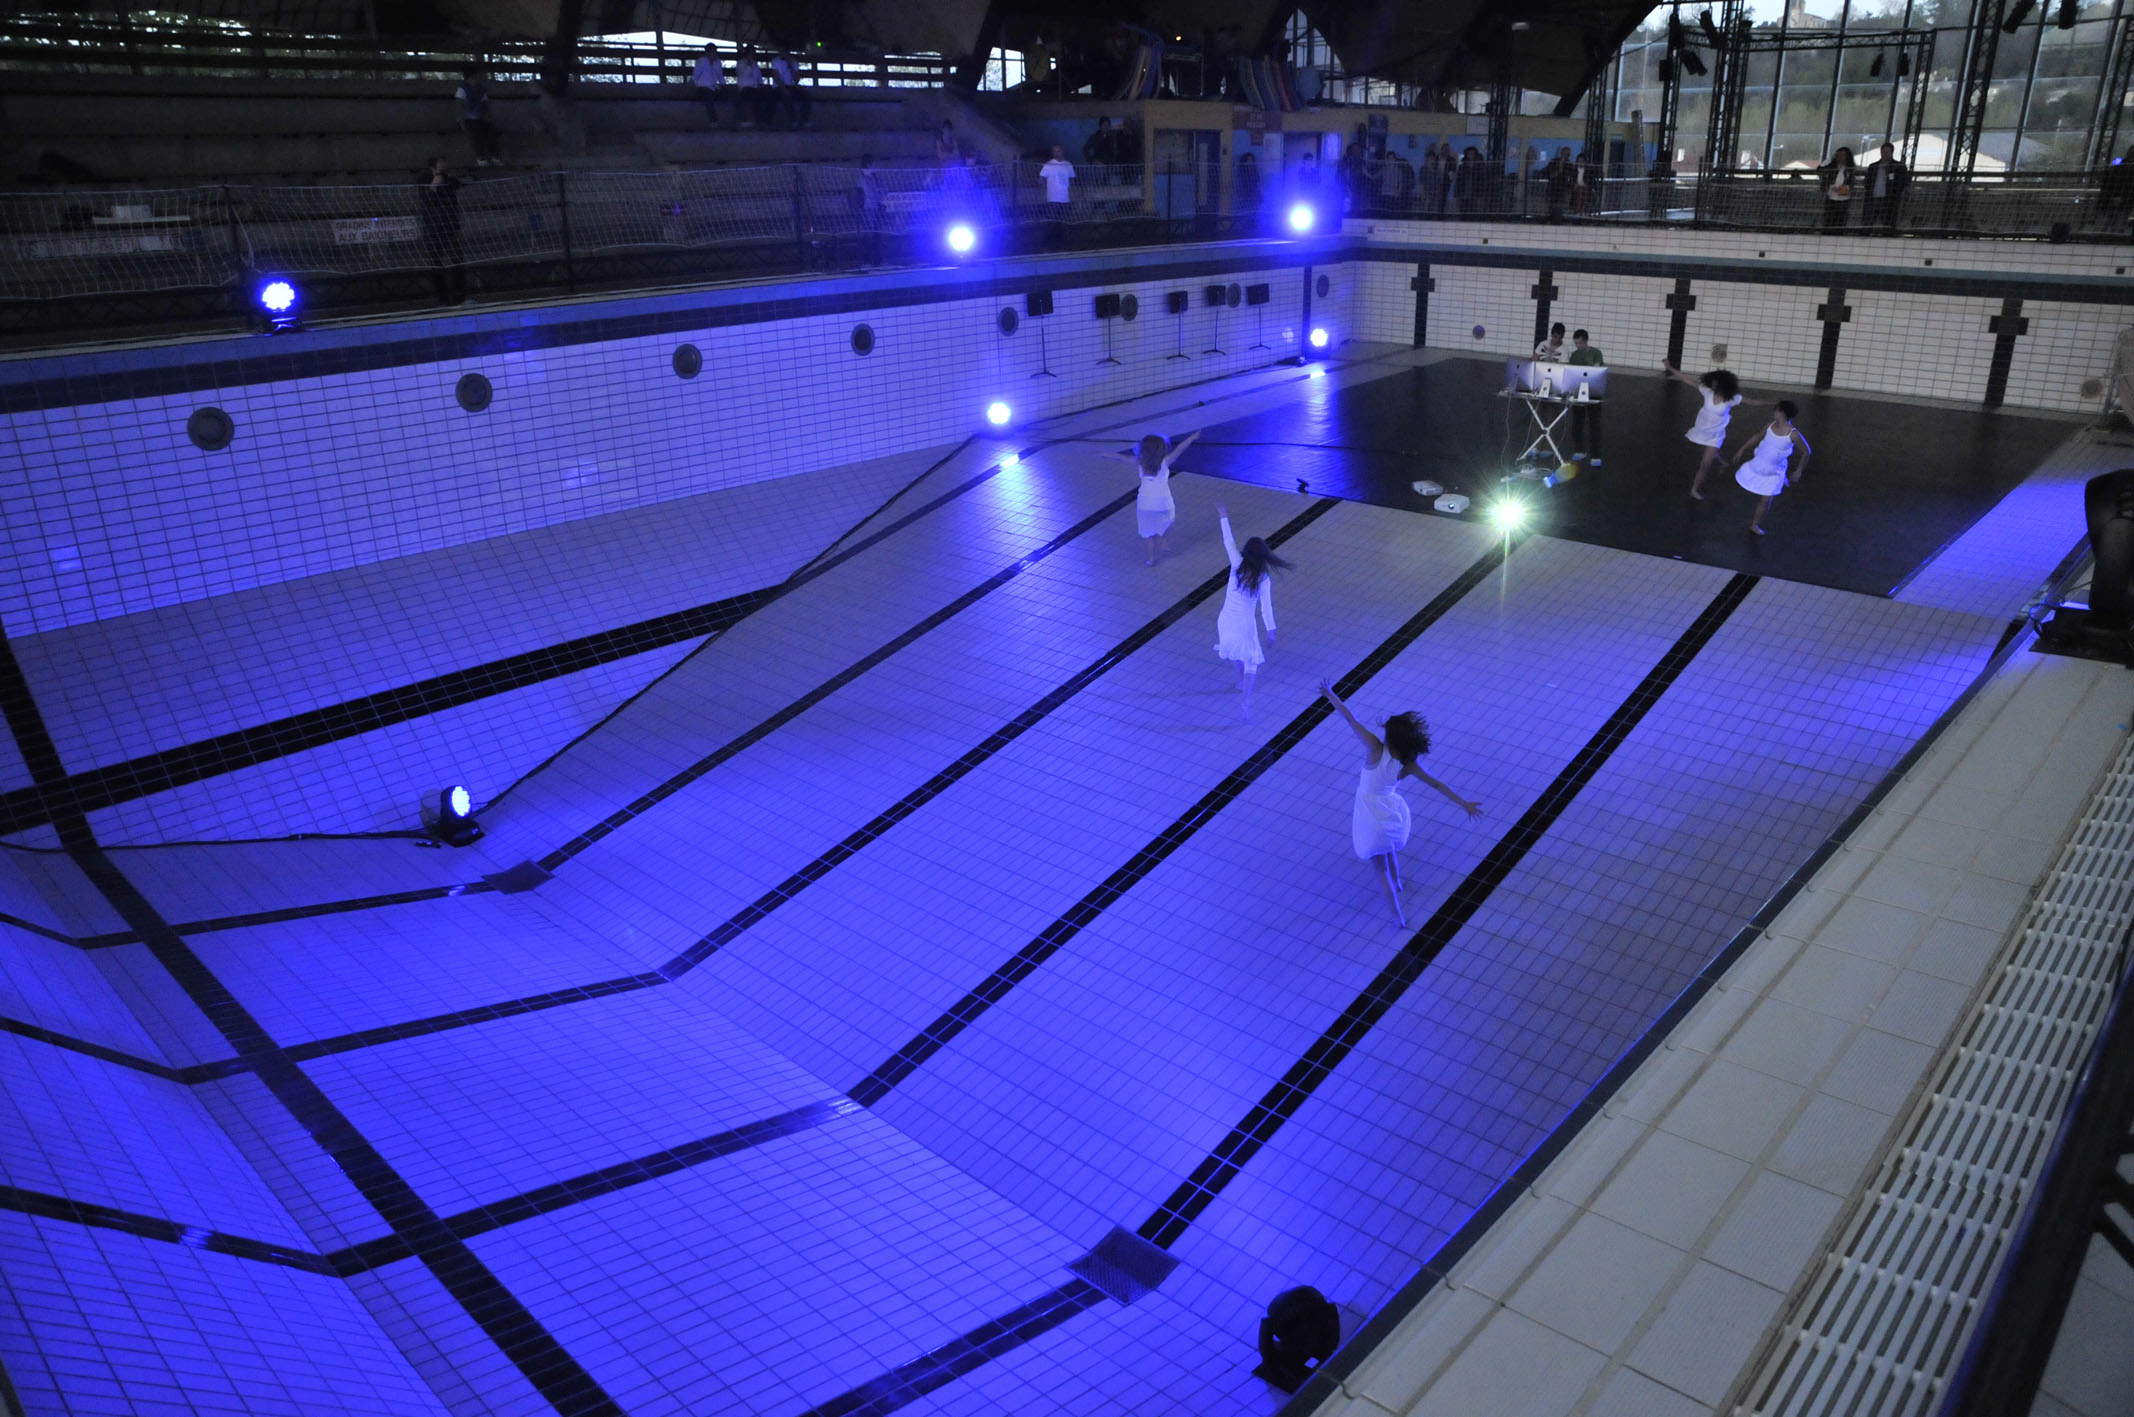 Nuit de la creation cnr de bdx piscine galin bordeaux - Piscine olympique bordeaux ...